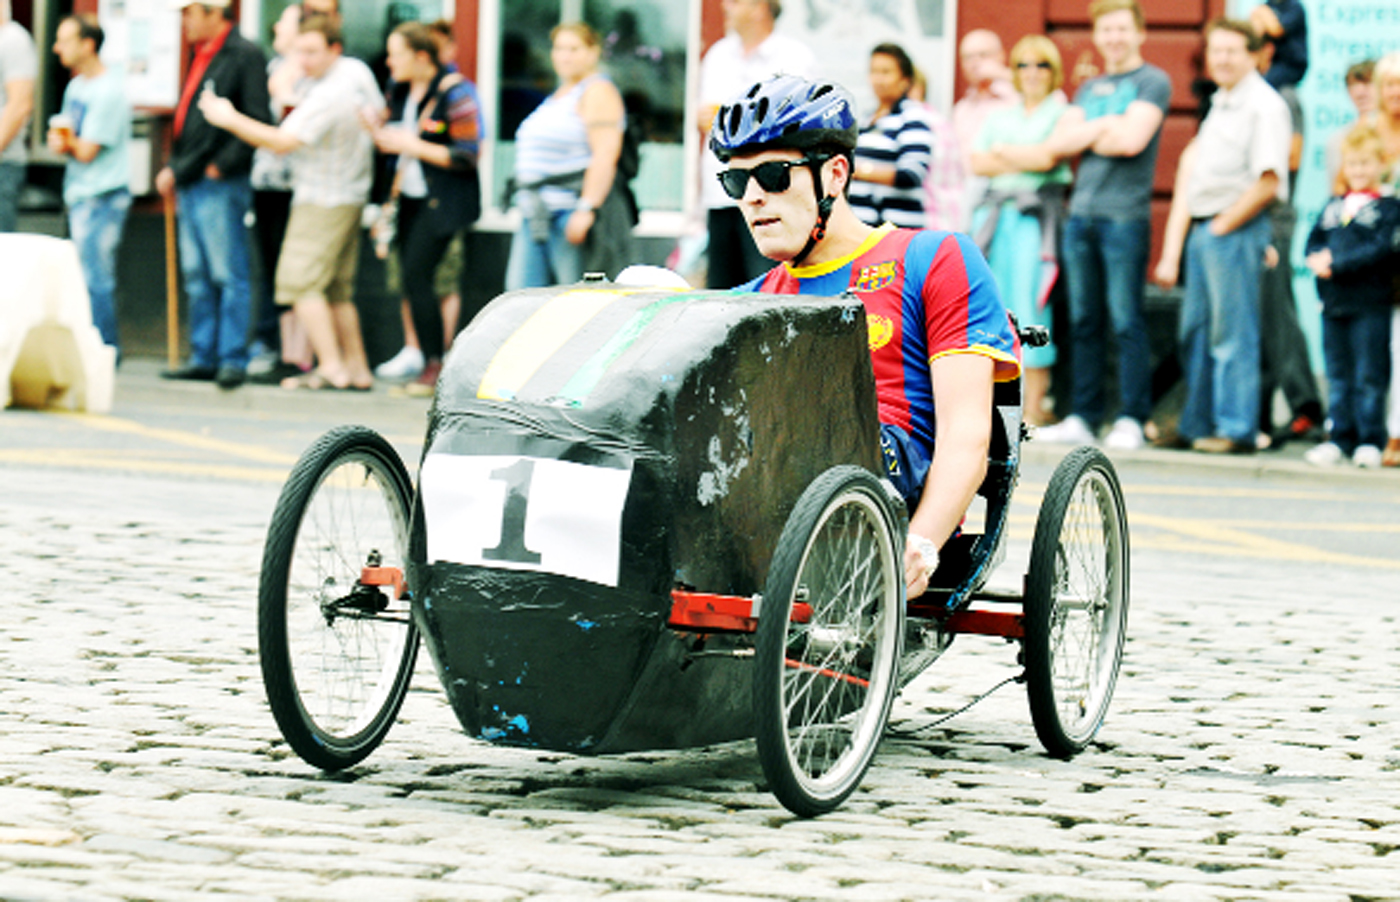 A scene from the pedal car grand prix in Darwen which Nelson now aims to match